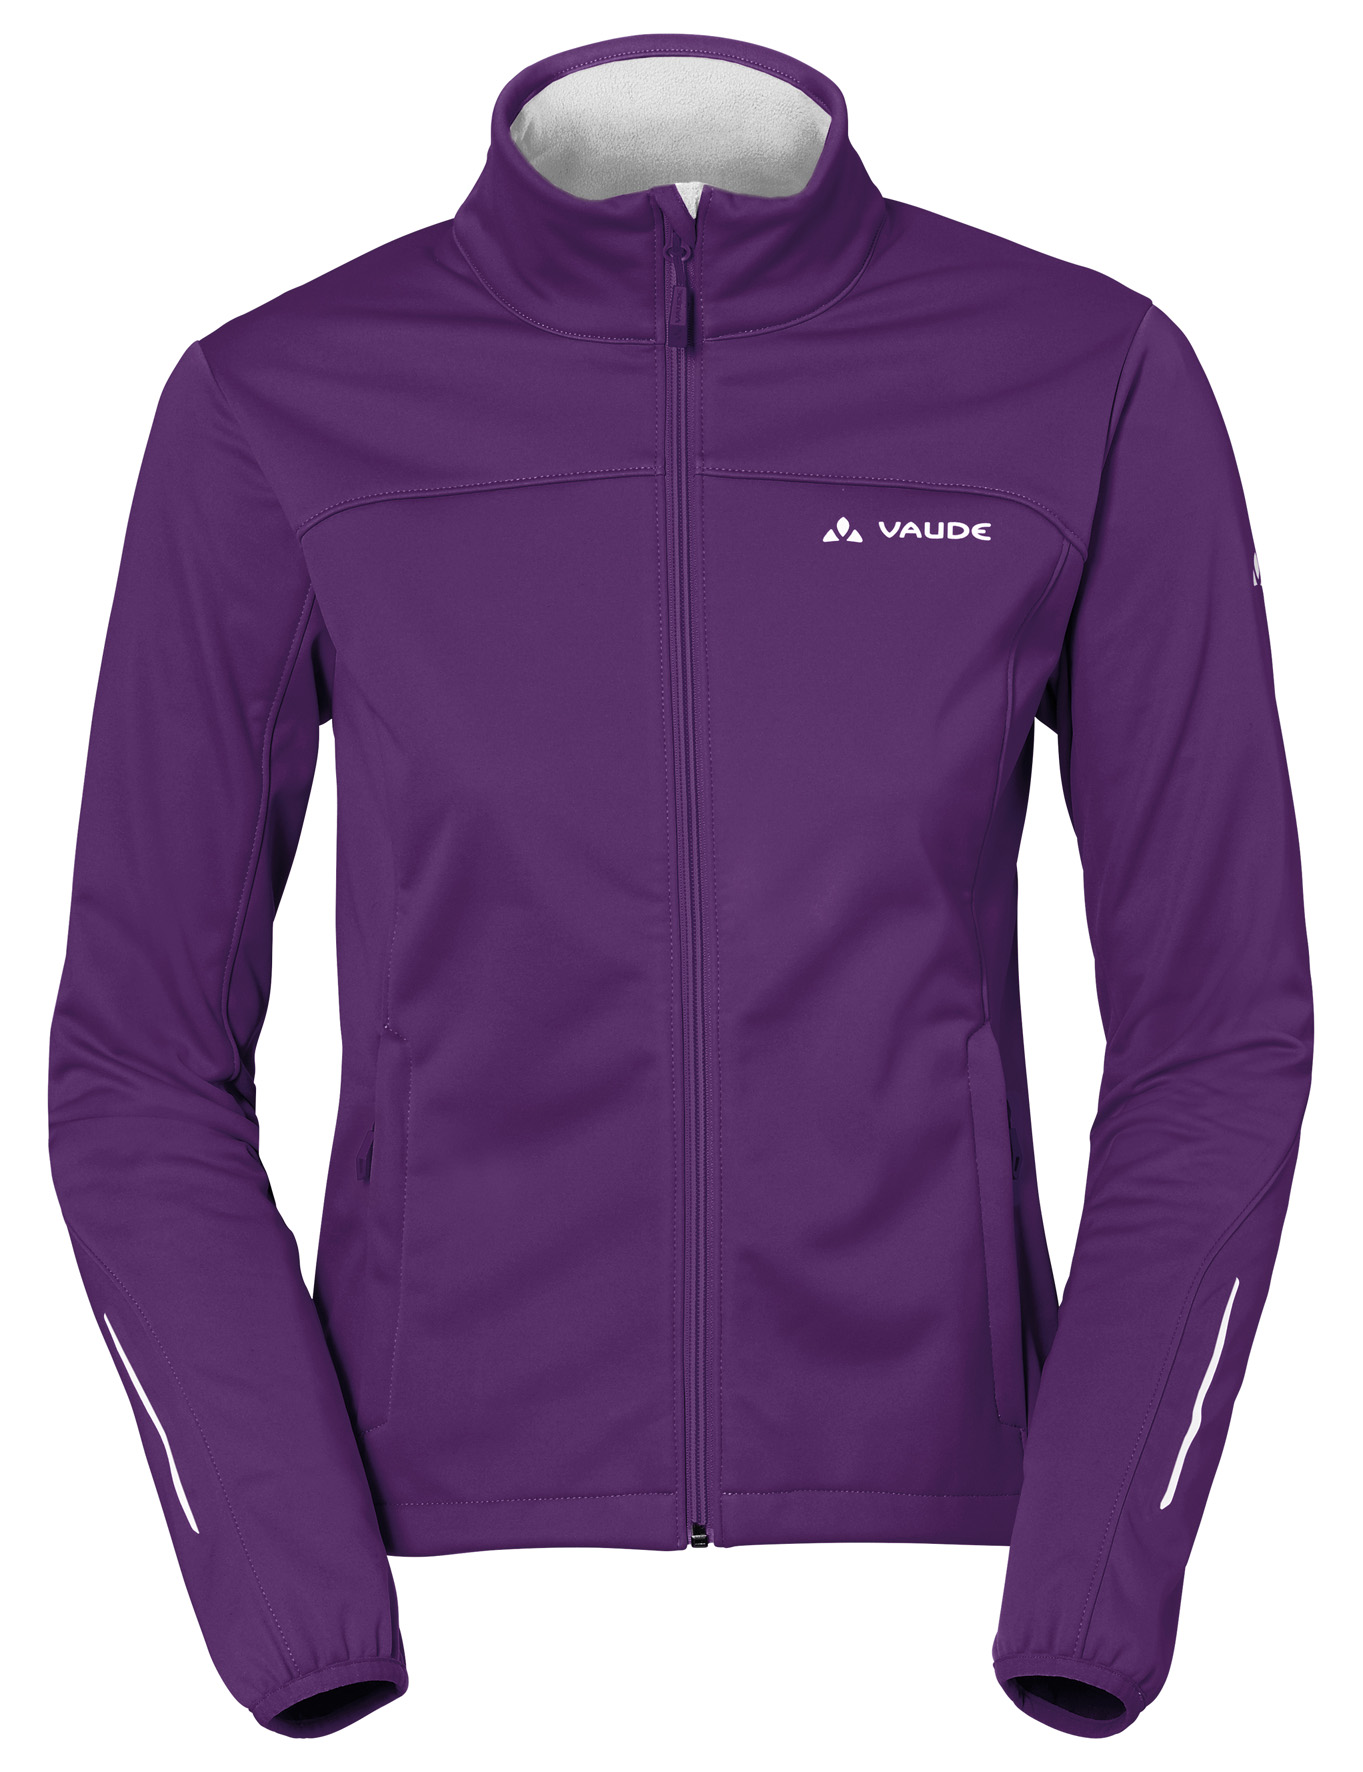 VAUDE Women´s Wintry Jacket III elderberry Größe 48 - schneider-sports